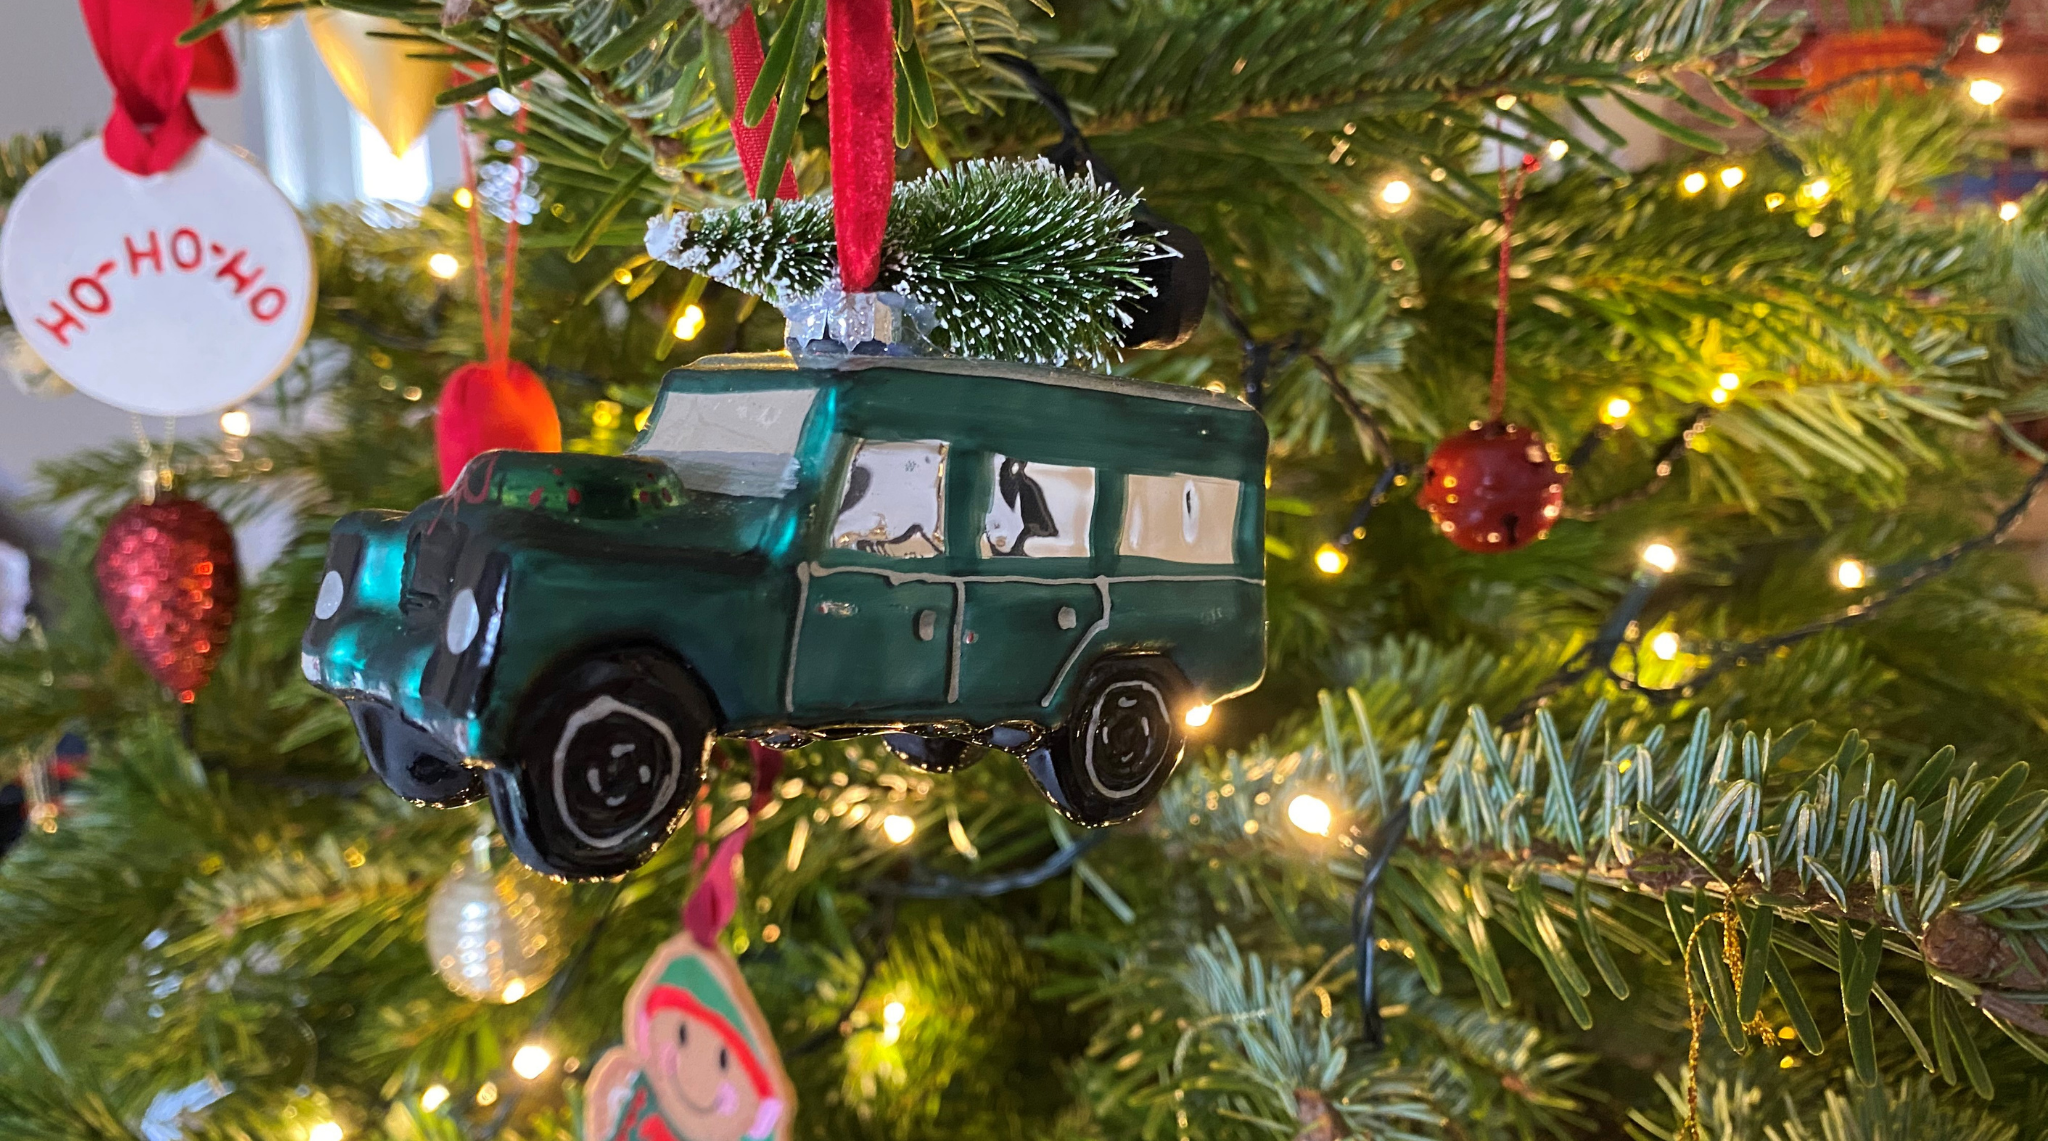 Land Rover Christmas Tree On Roof